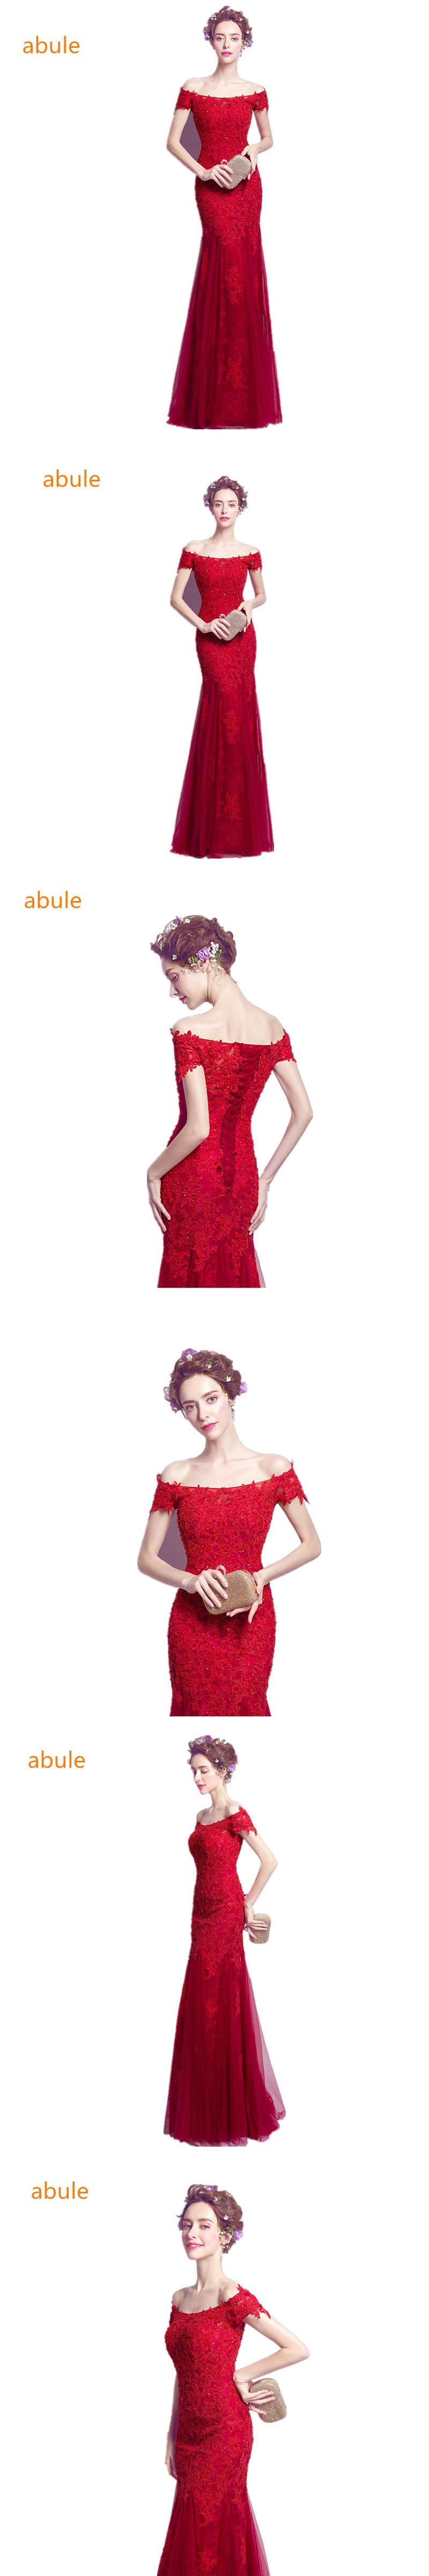 Abule royal red burgundy long evening dress beads pearlsl lace